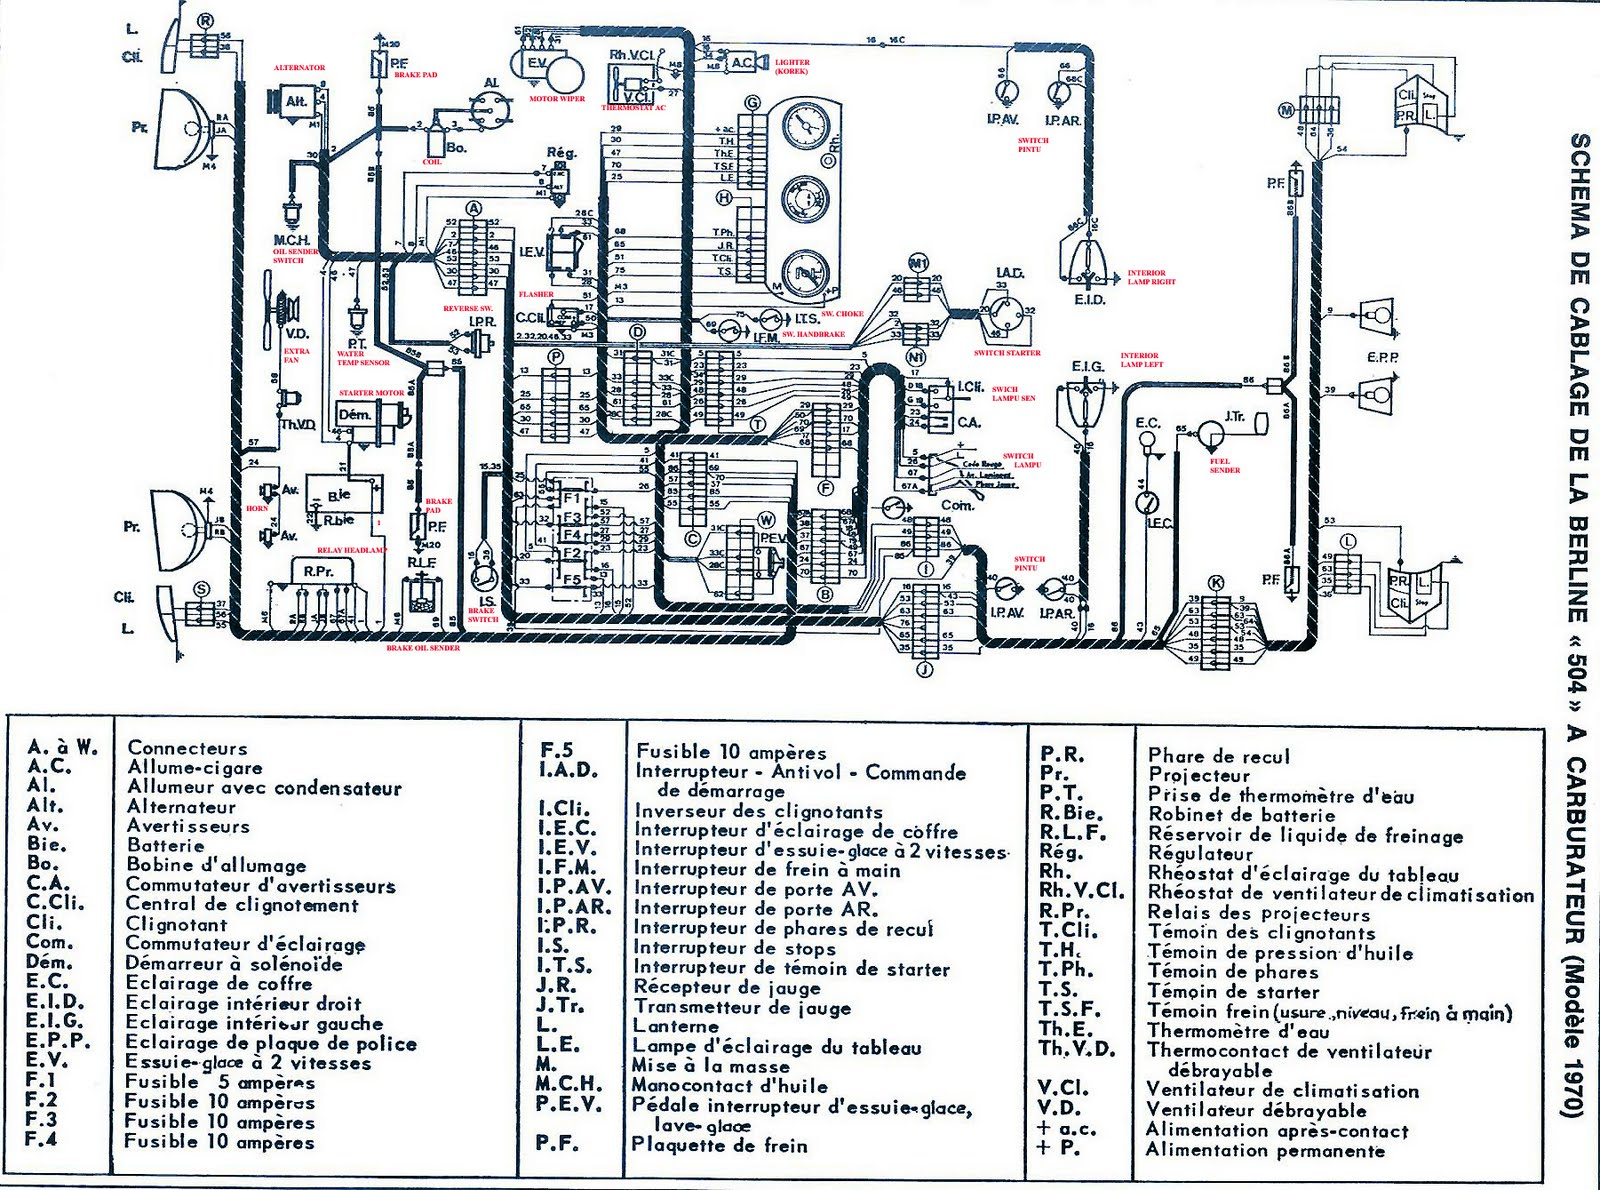 hight resolution of peugeot 505 wiring diagram wiring diagram expertpeugeot 505 wiring diagram wiring diagram for you peugeot 505